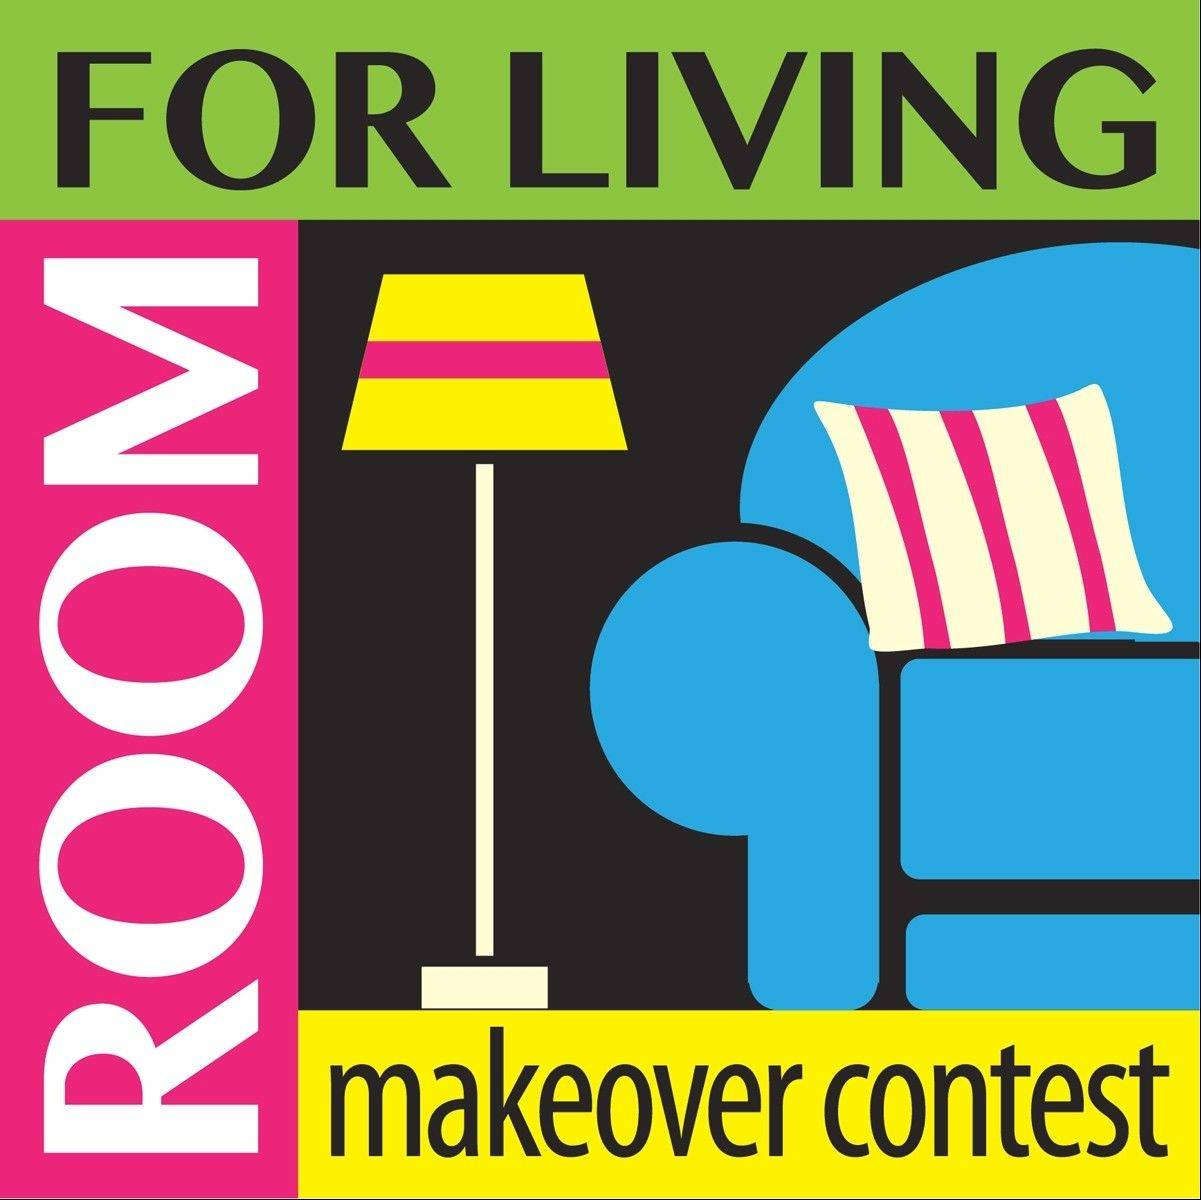 Describe your family room challenge in 300 words or less and enter for a chance to win a room makeover.